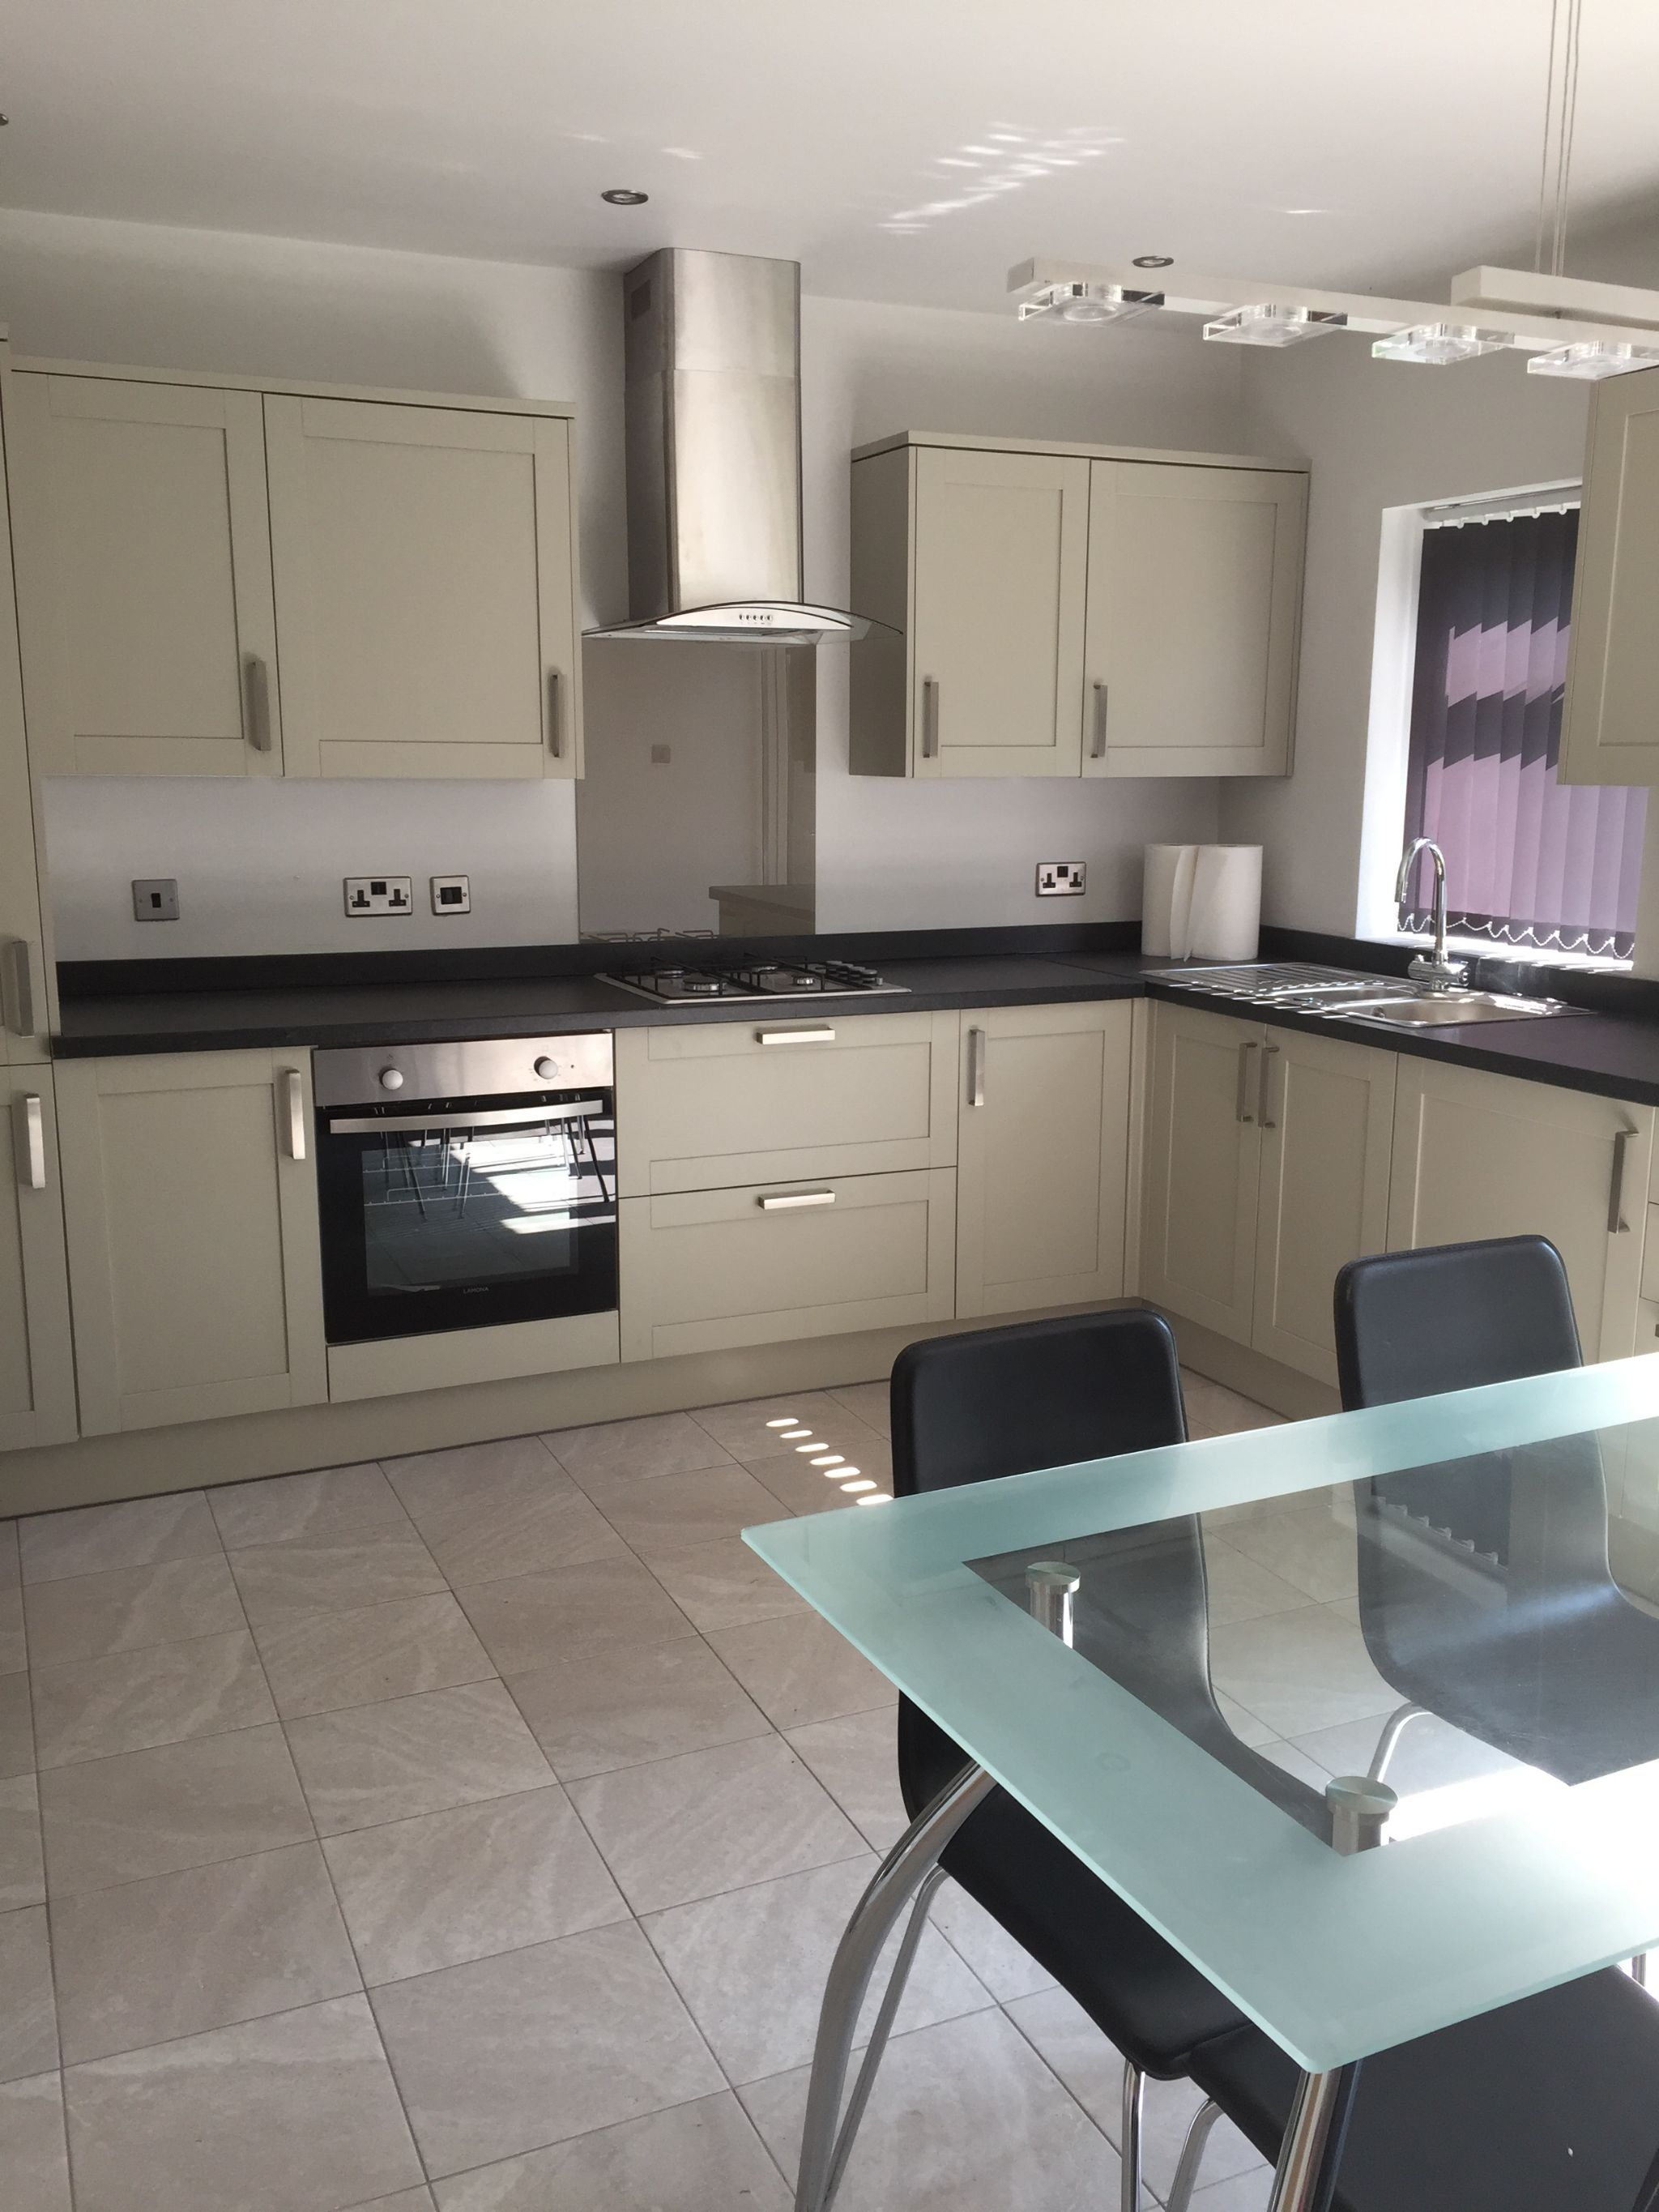 1 bedroom shared house To Let in Manchester - Photograph 3.